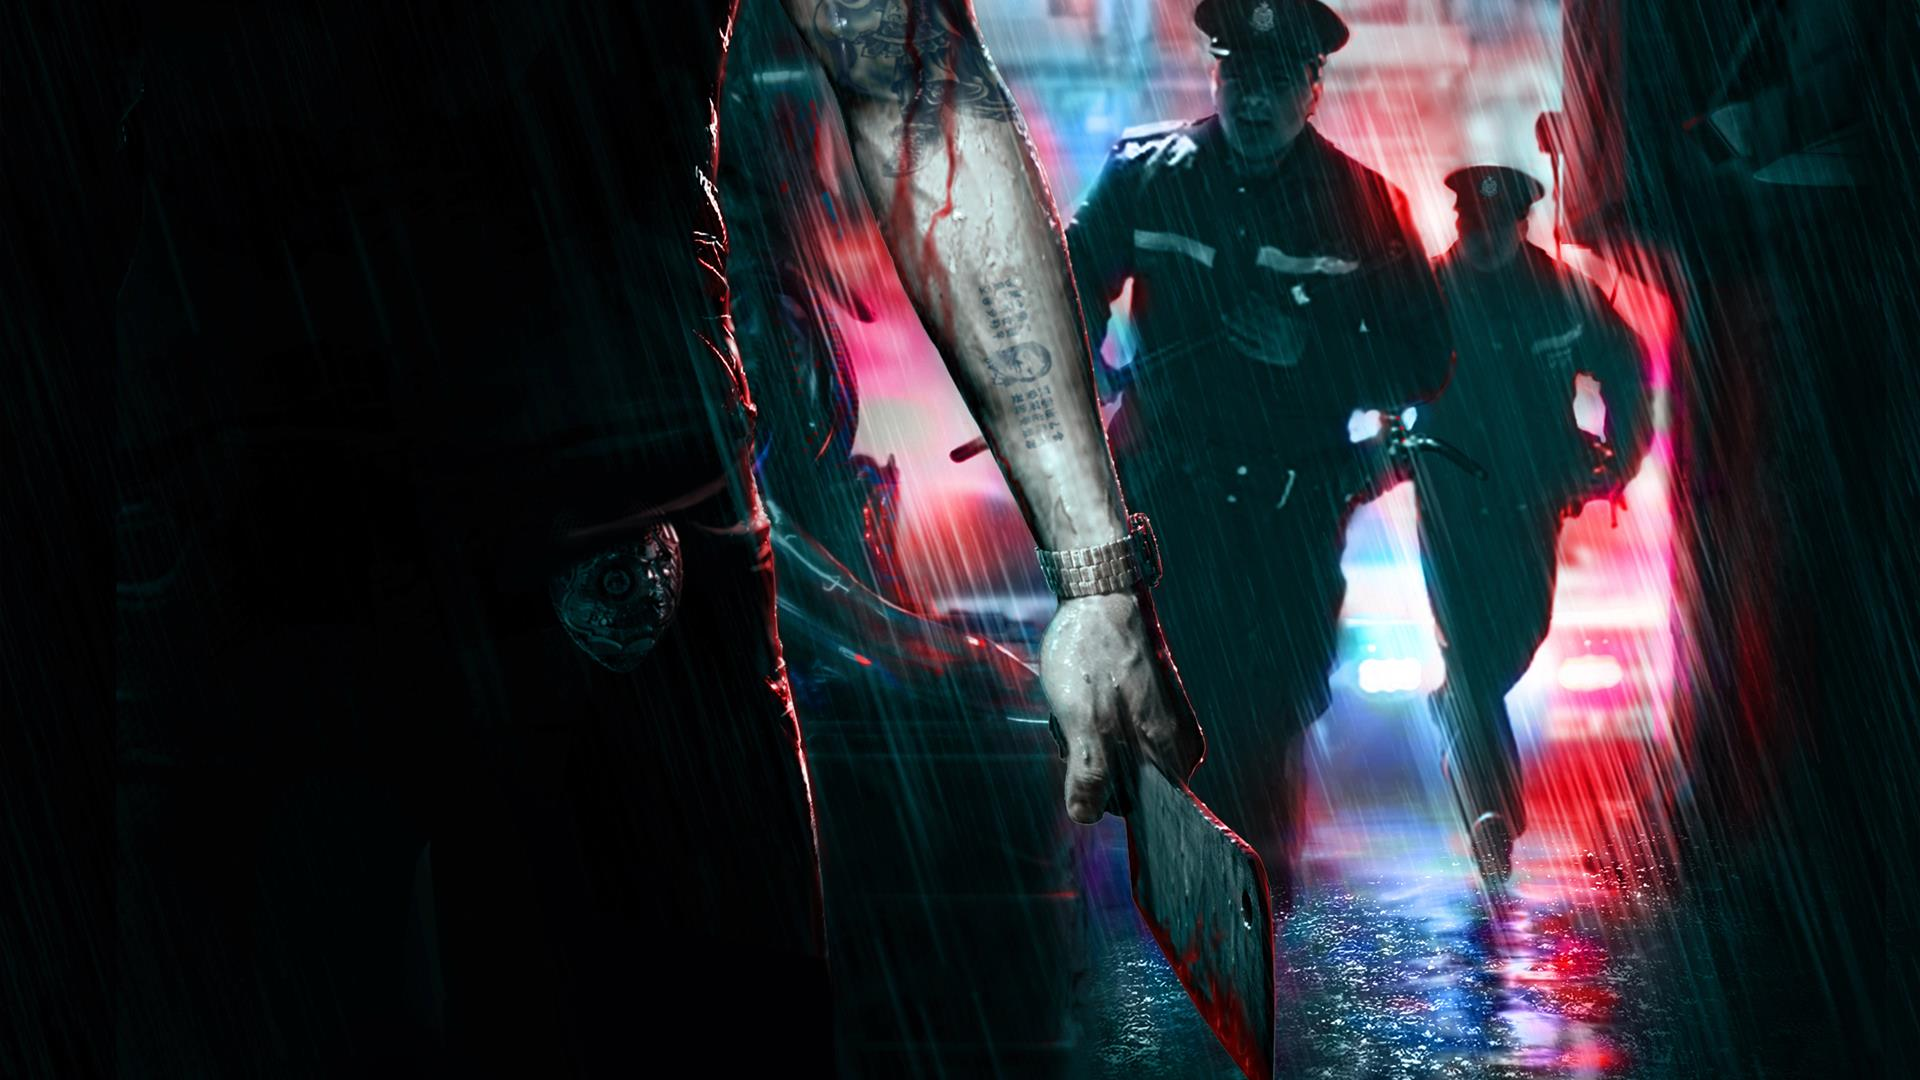 Sleeping Dogs Hd Wallpaper Background Image 1920x1080